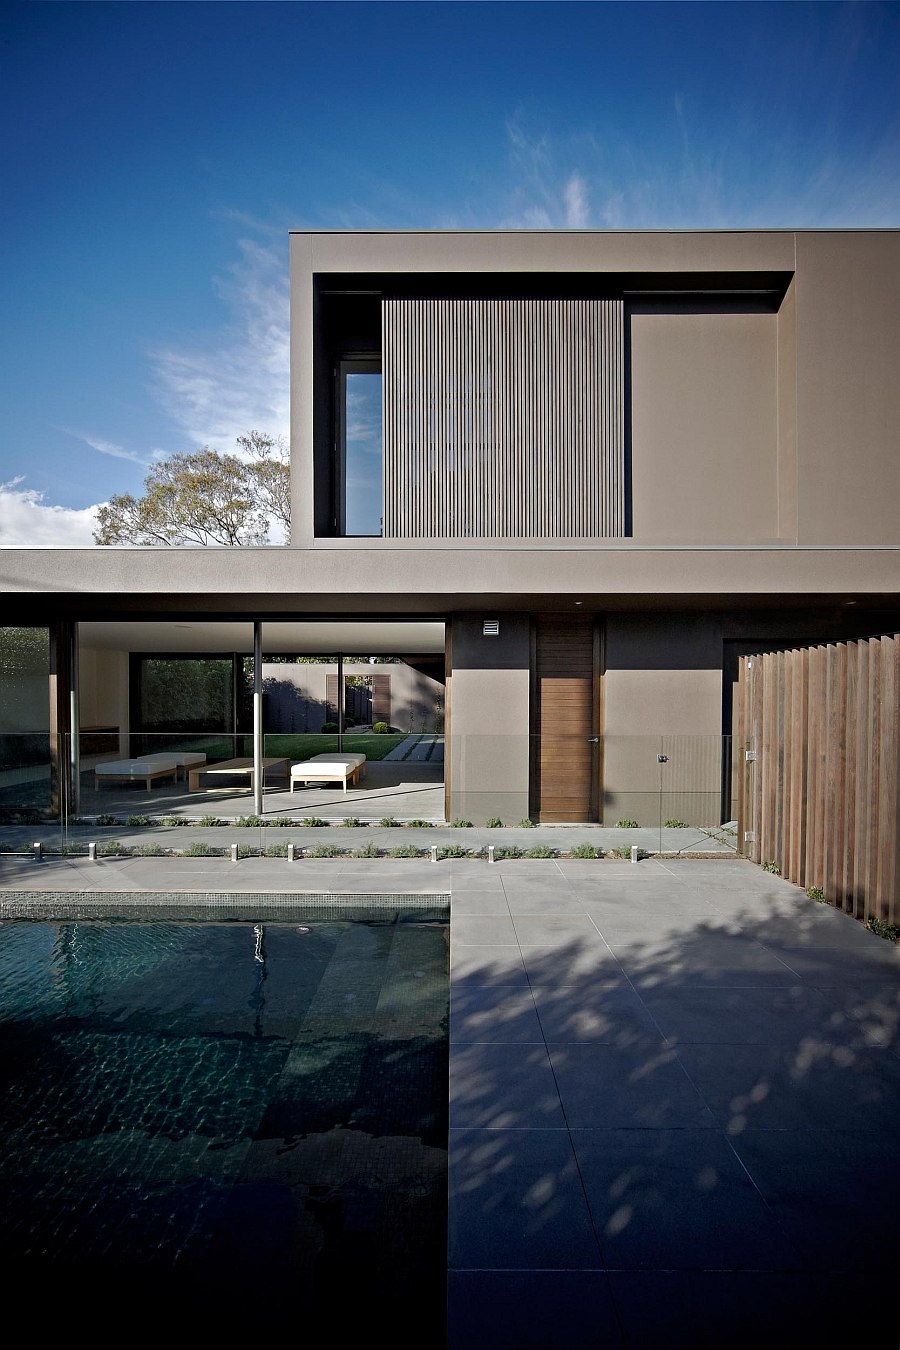 View of the stylish pool area that complements the appeal of the home